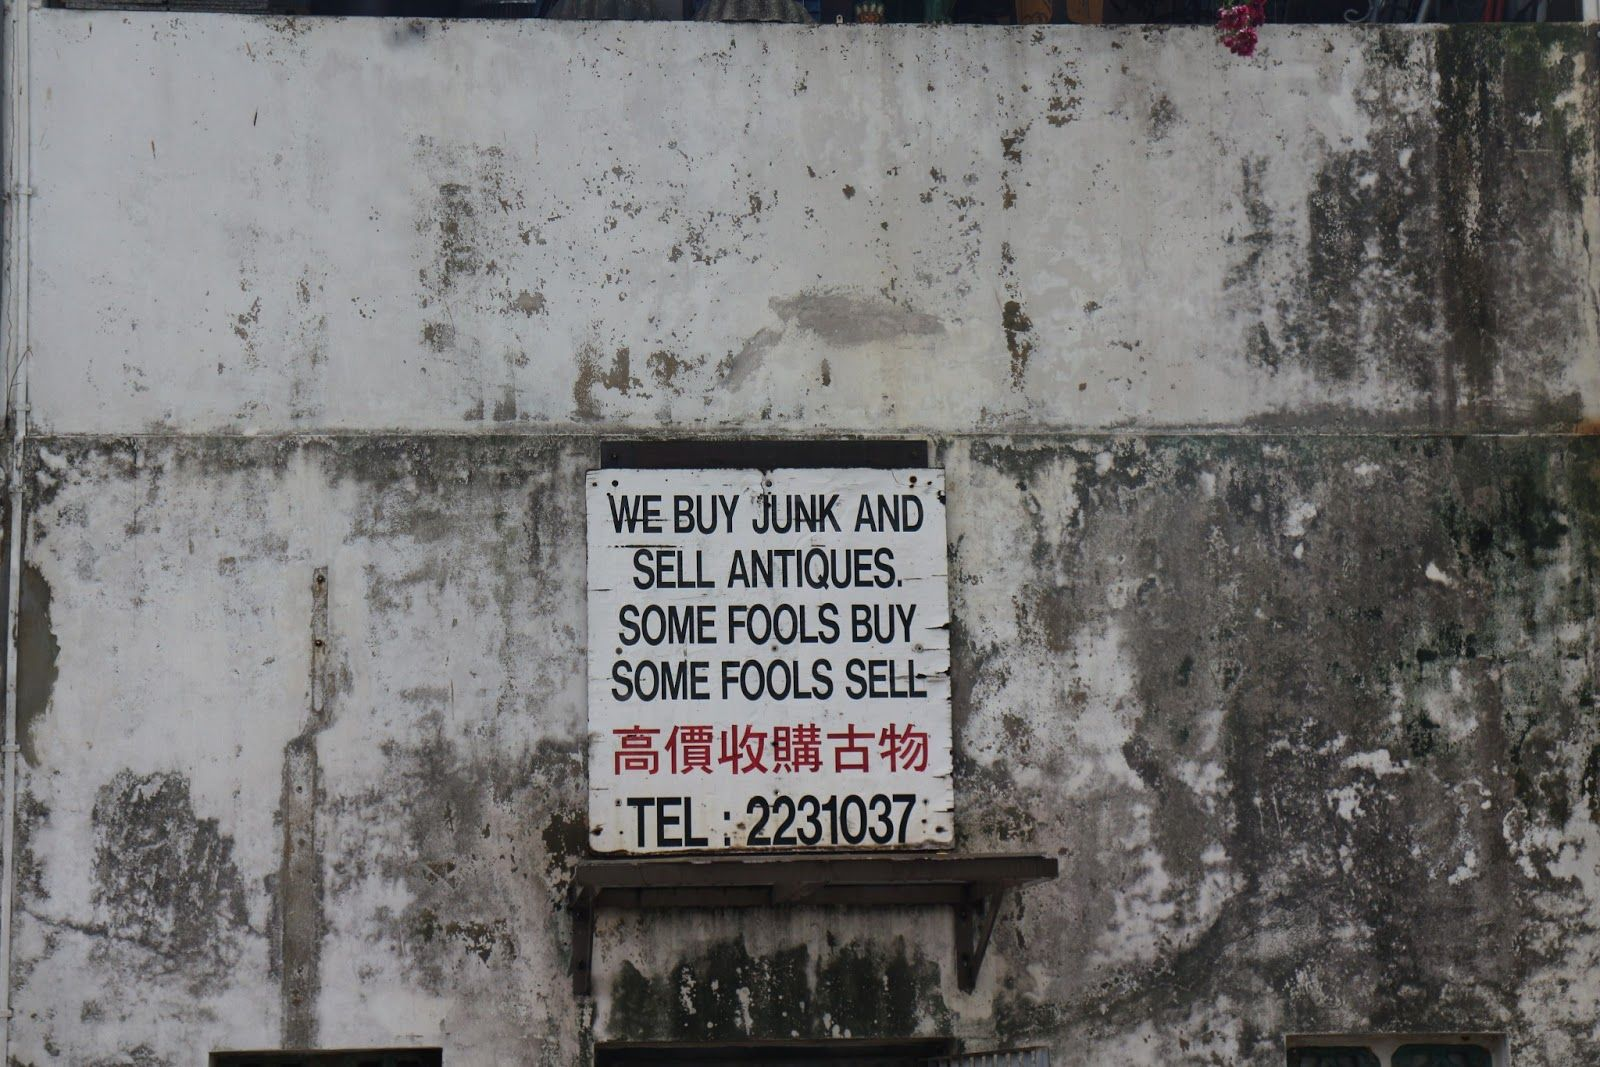 We buy junk and sell antiques... some fools buy, some fools sell ...